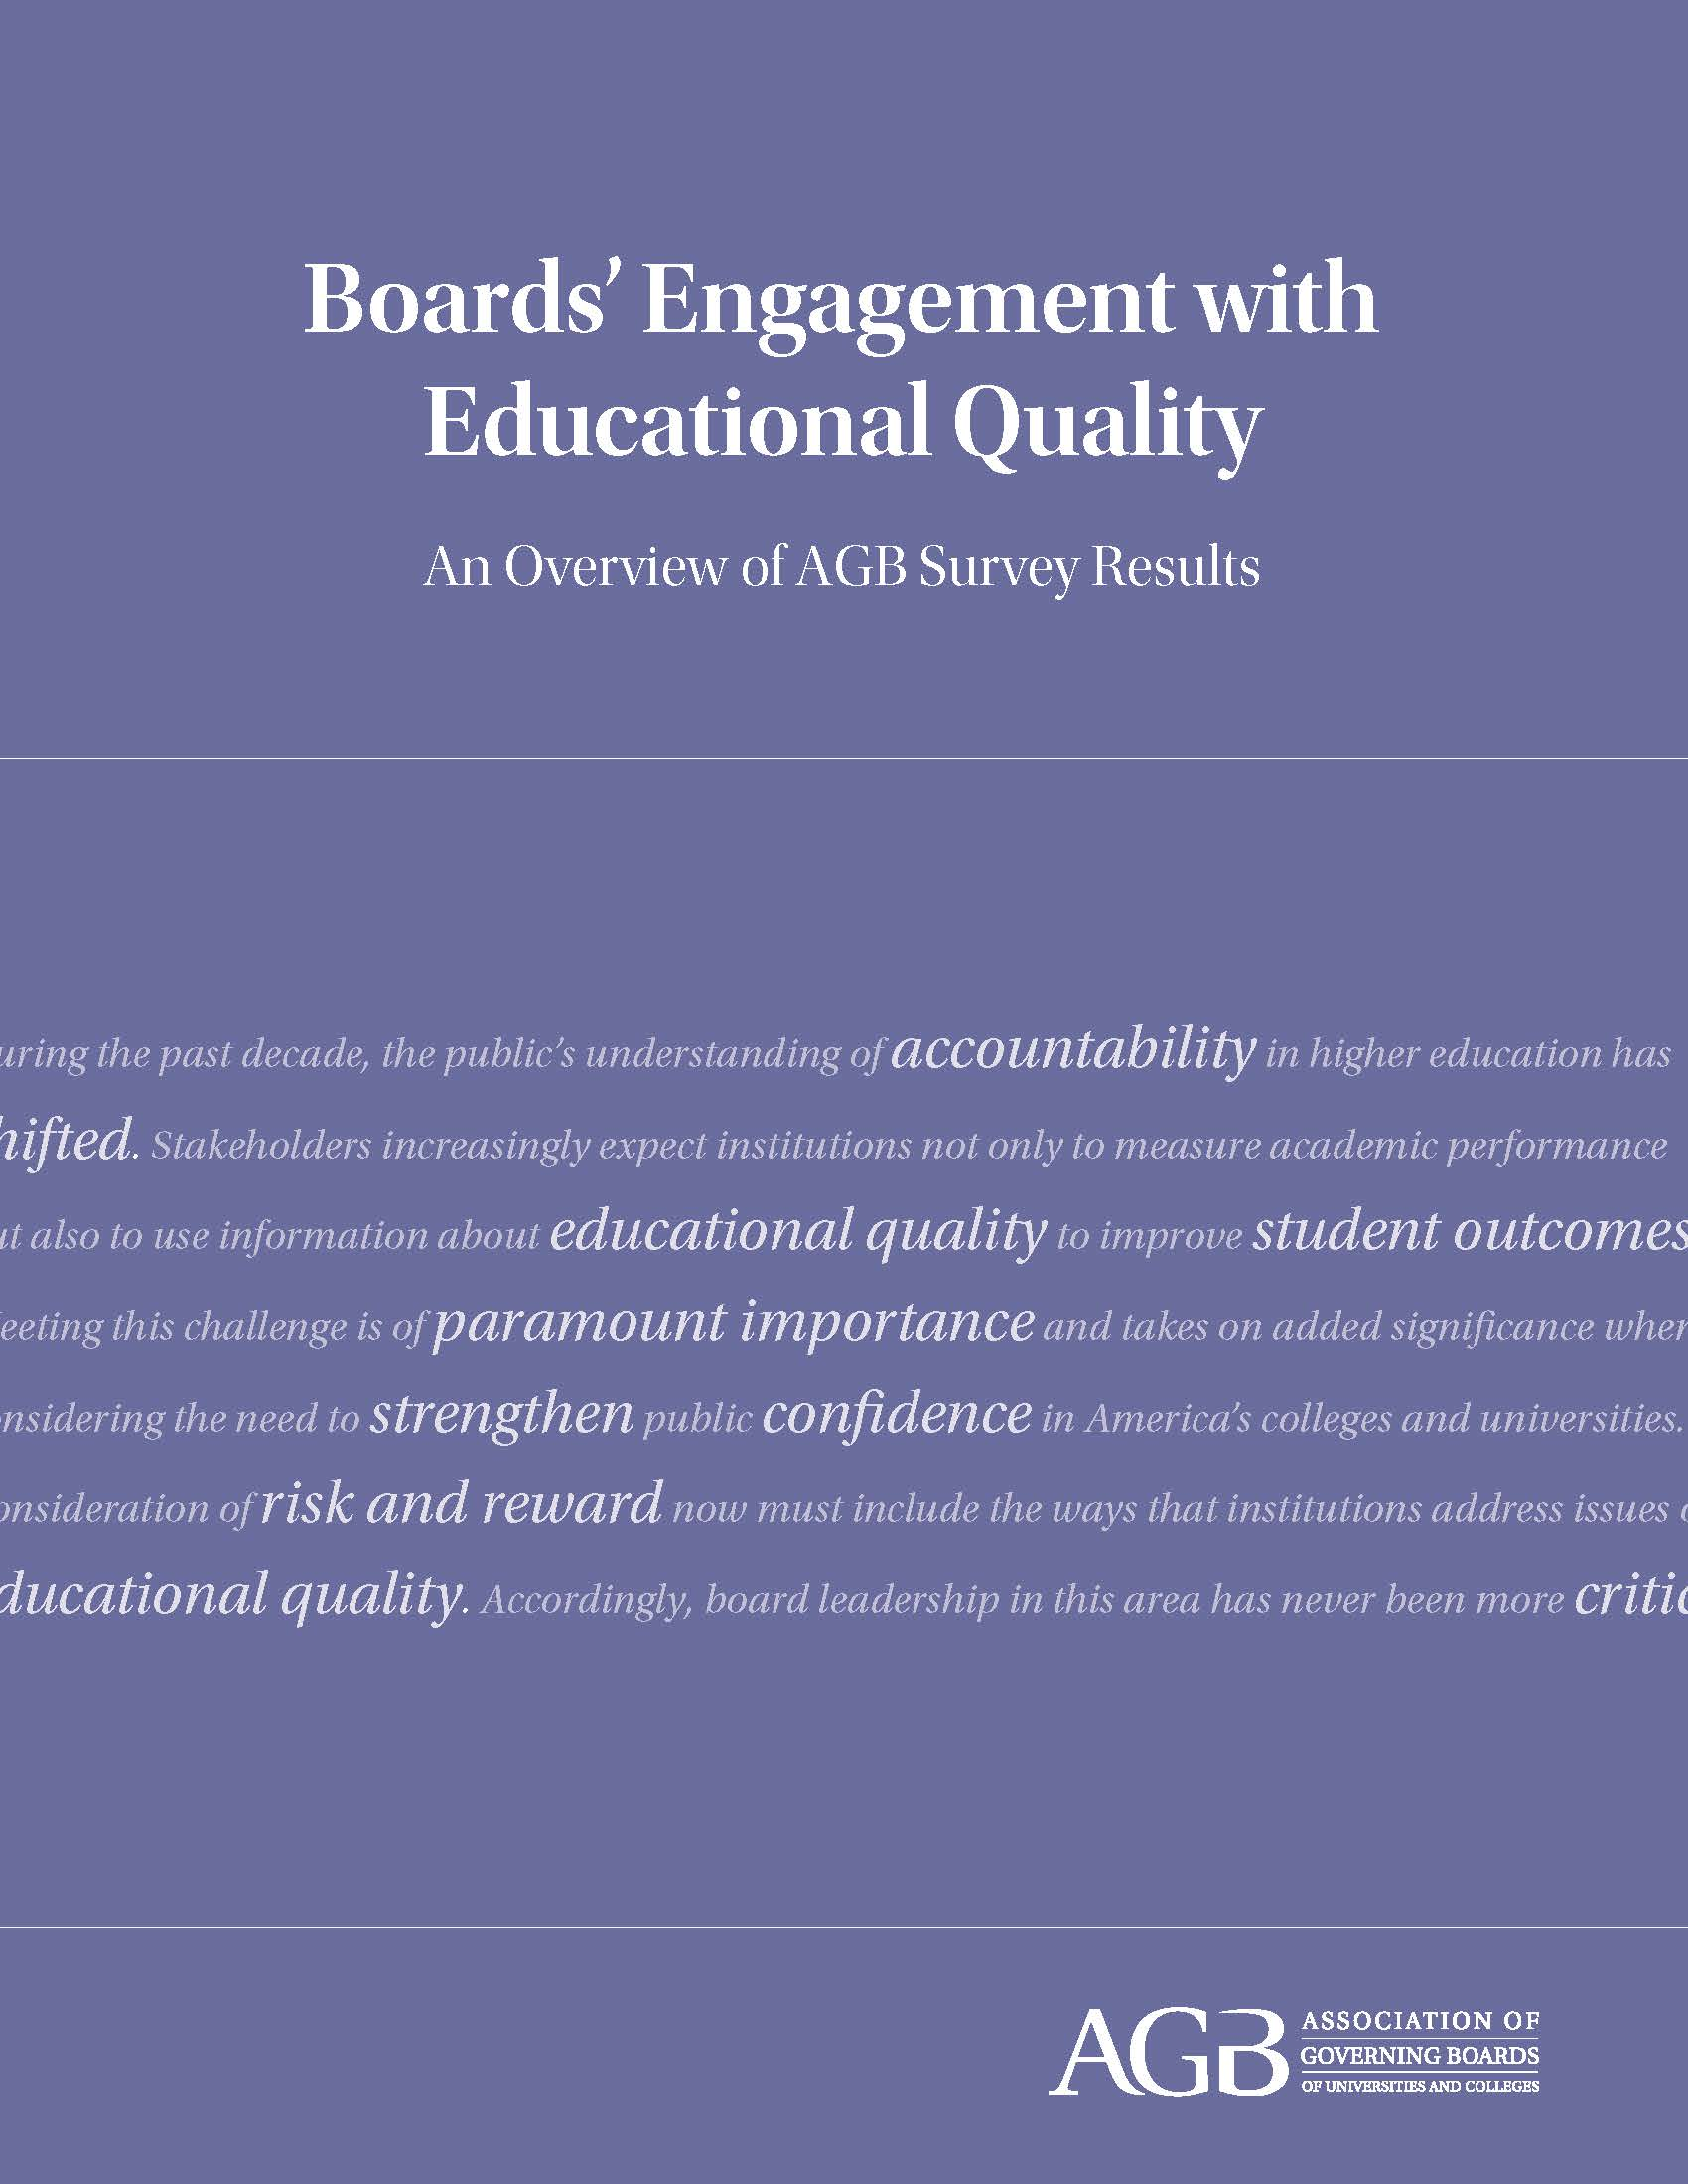 Boards' Engagement with Educational Quality